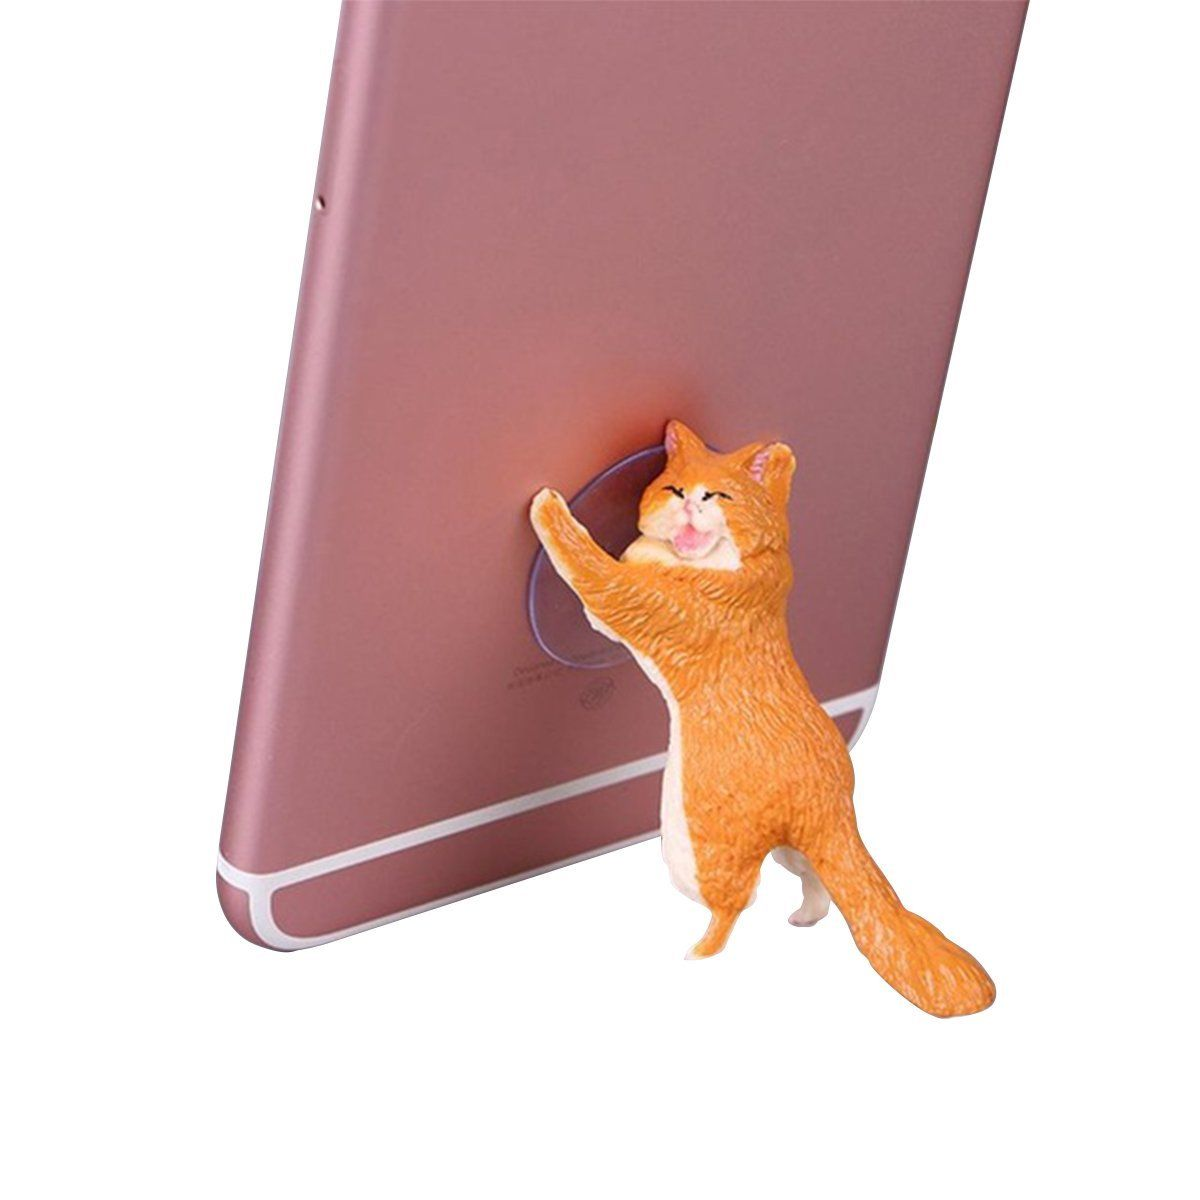 2019 NEW Cute Cat Cell Phone Holder Tablets Desk Car Stand ...